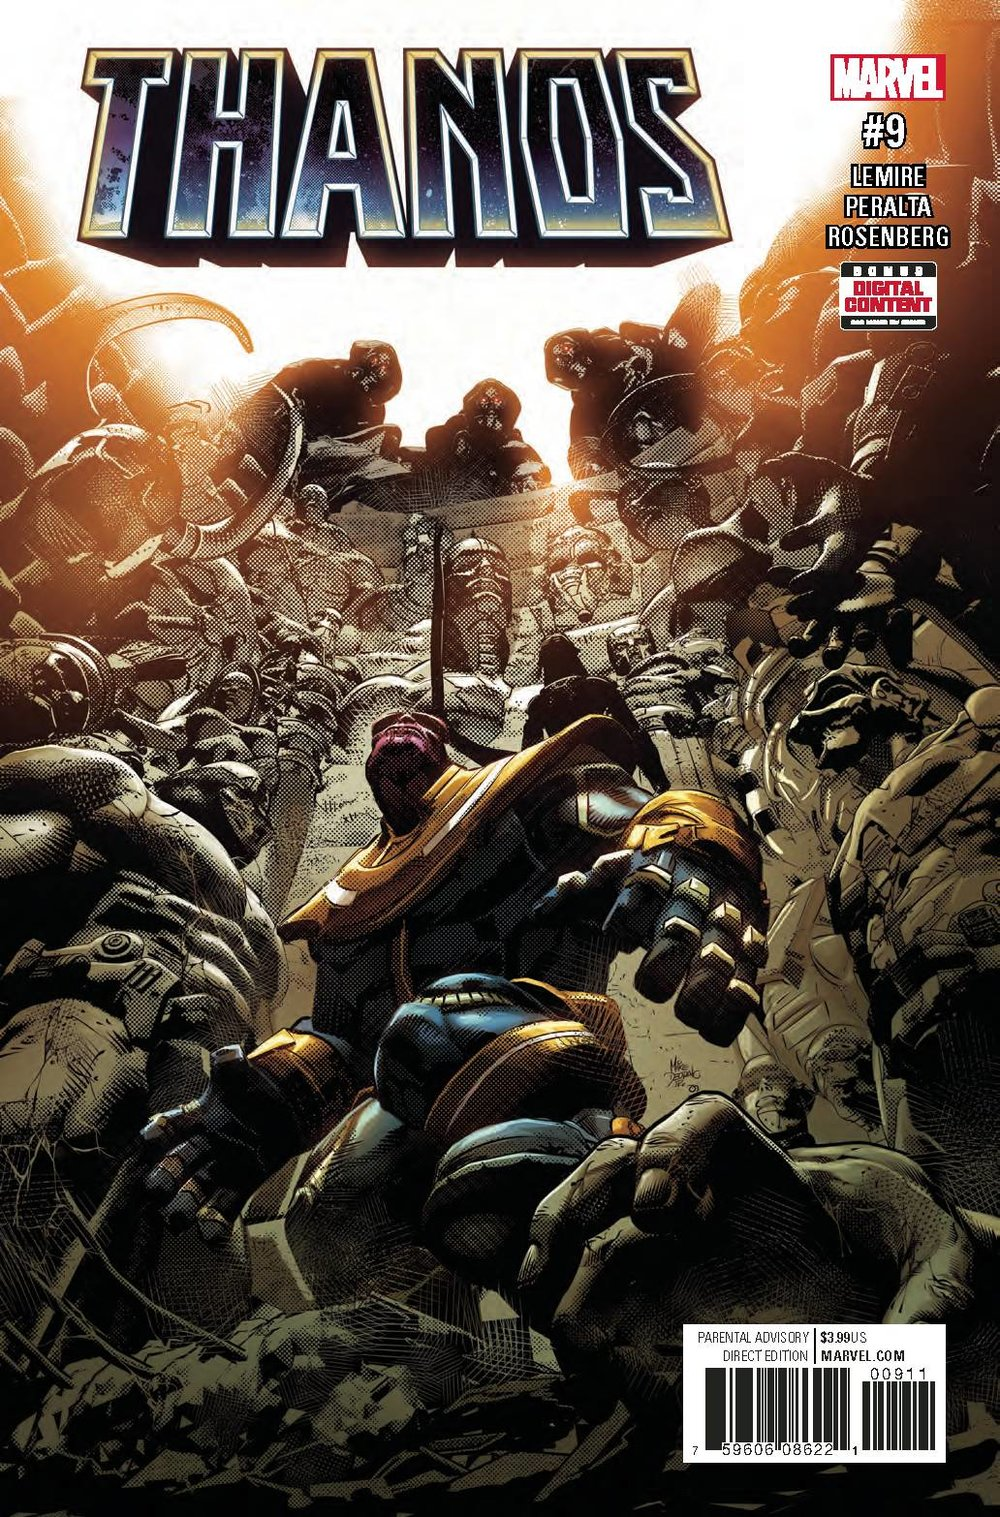 THANOS #9 - MARVEL COMICSWritten by Jeff LemireArt by German Peralta• The God Quarry.•  None who enter have ever returned.•  Now, it's Thanos' turn.